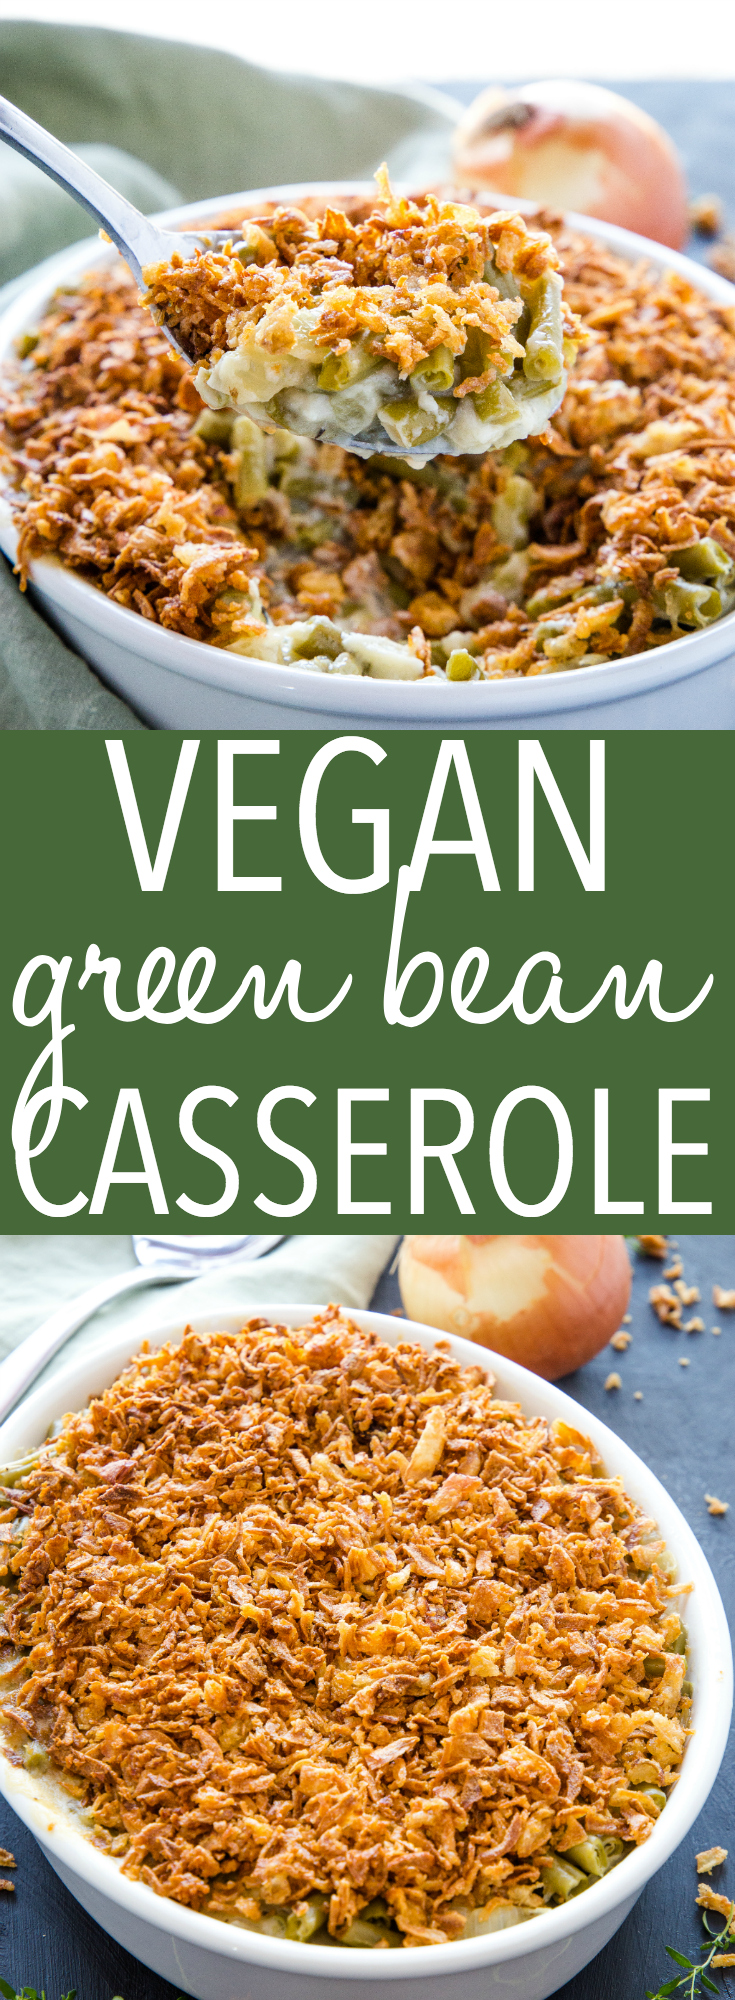 This Easy Vegan Green Bean Casserole is the BEST from-scratch classic Thanksgiving or Christmas side dish you'll ever taste! No canned soup and no dairy! Recipe from thebusybaker.ca! #thanksgiving #christmas #sidedish #dinner #familymeal #greenbeancasserole #winter #fall #comfortfood #casserole #holiday #recipe #foodblog #vegan #dairyfree #healthy via @busybakerblog